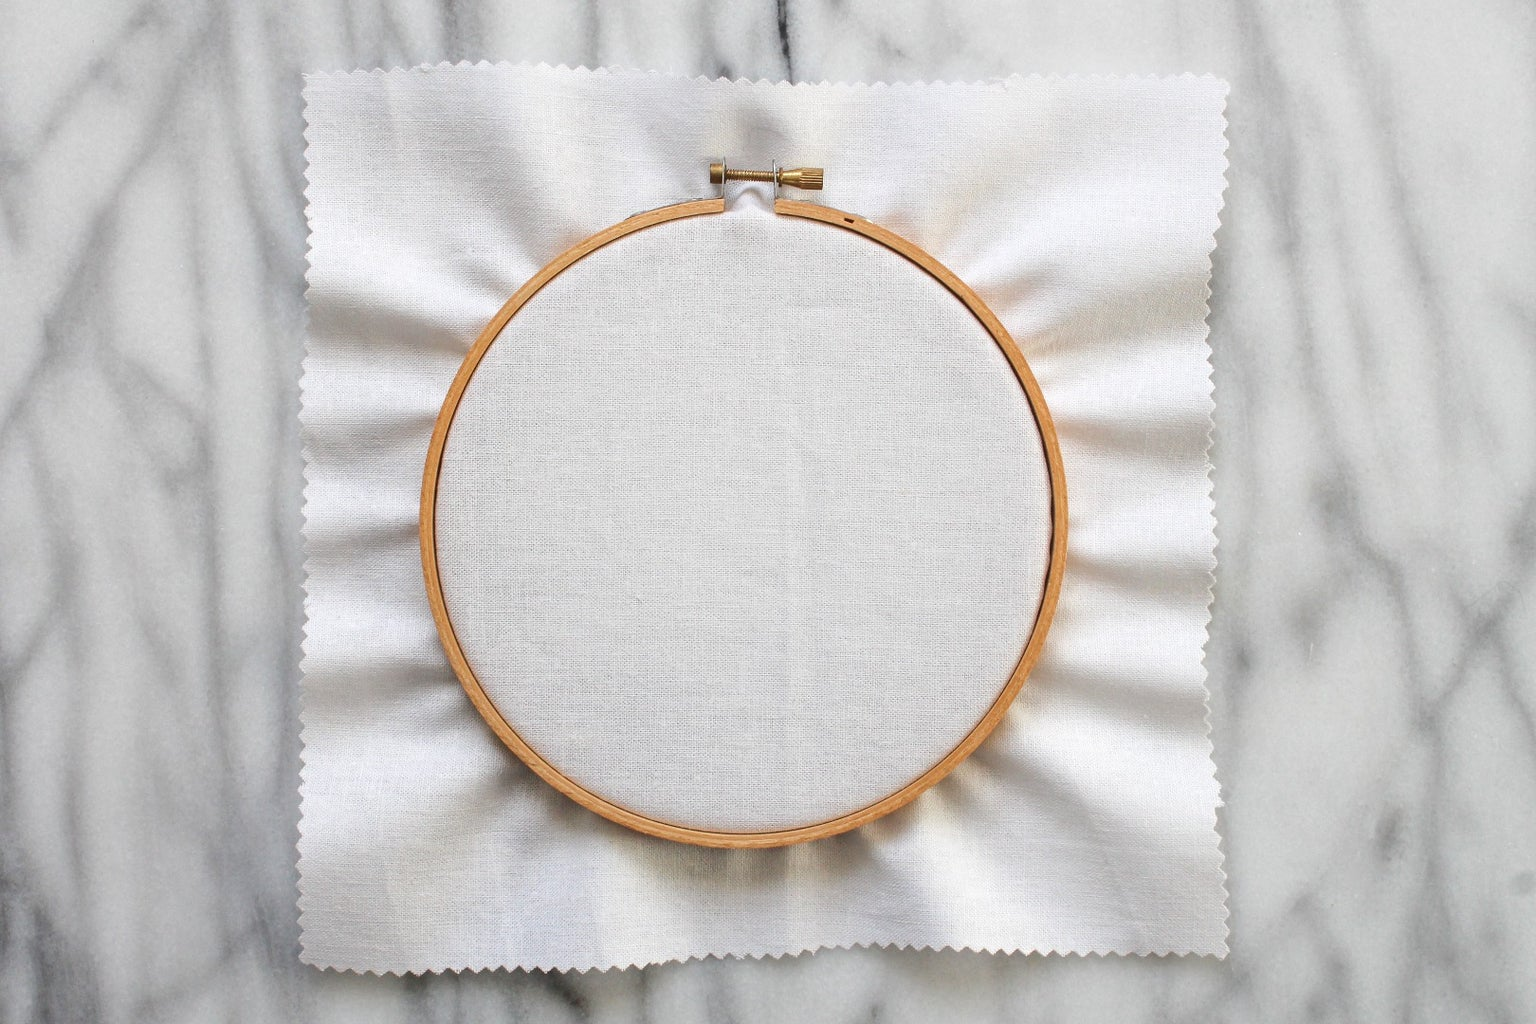 How to Use an Embroidery Hoop